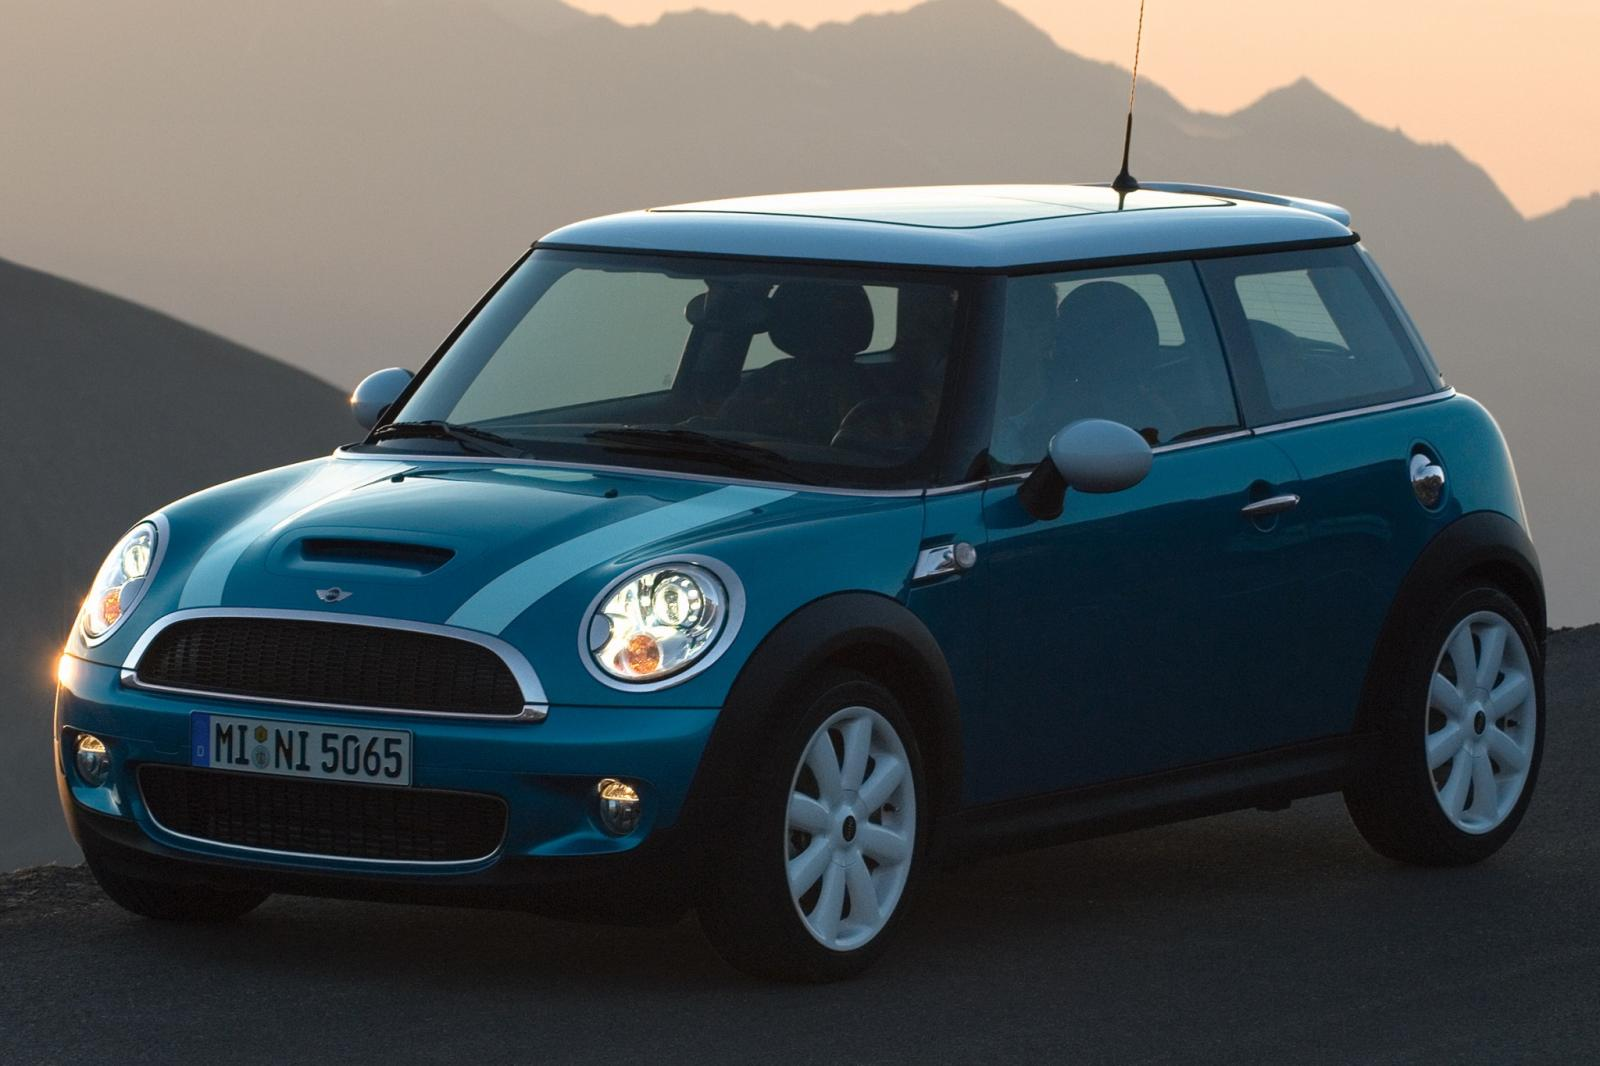 2007 mini cooper information and photos zombiedrive. Black Bedroom Furniture Sets. Home Design Ideas